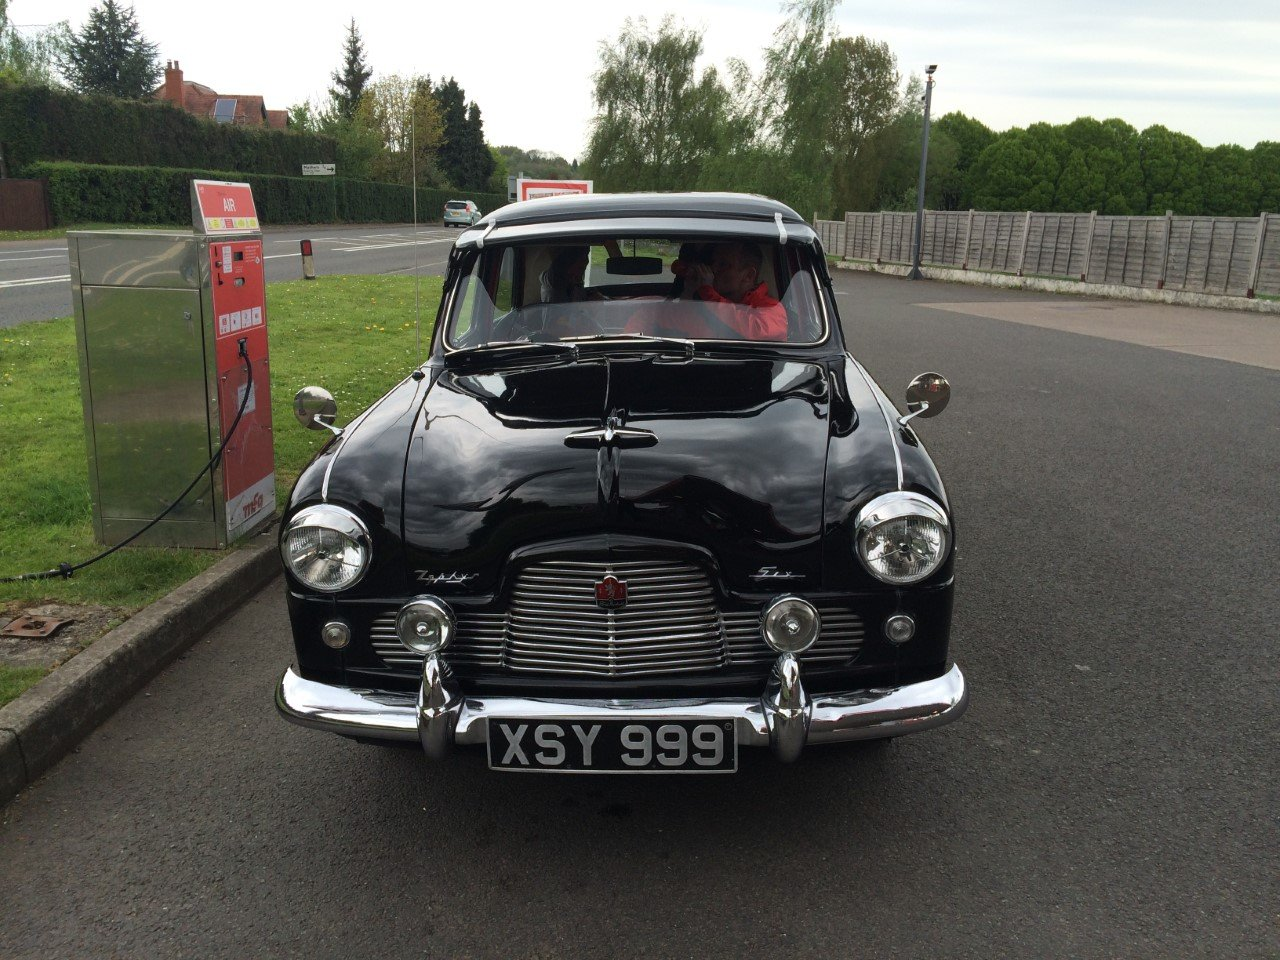 1954 FORD ZEPHYR SIX Mk1 For Sale (picture 2 of 4)